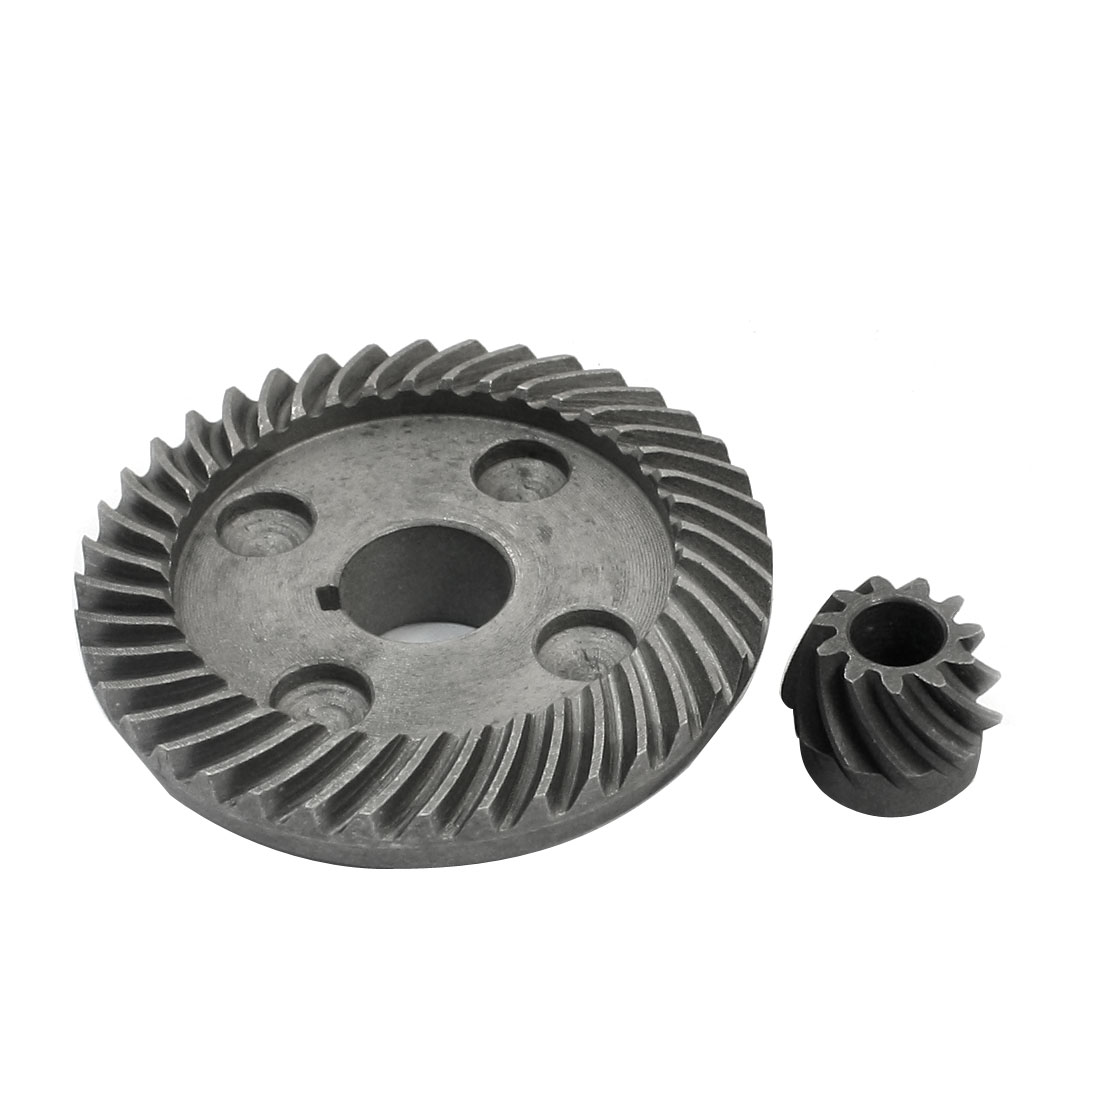 Electric Tool Spiral Bevel Gear Set for Hitachi 100 Angle Grinder (New Type)